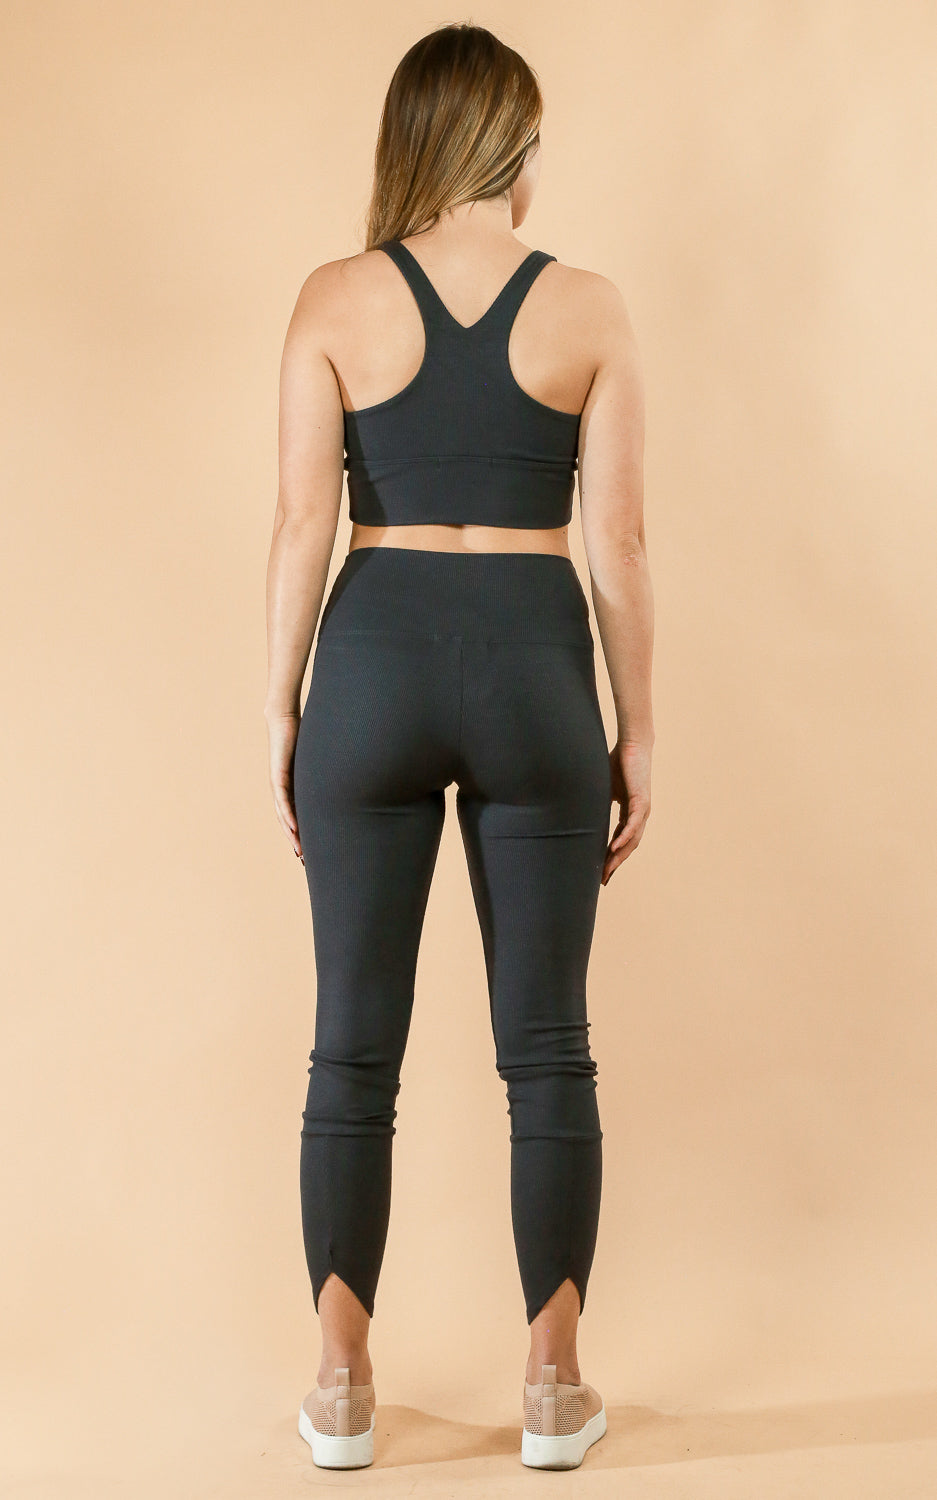 LIft Legging Charoal Rib